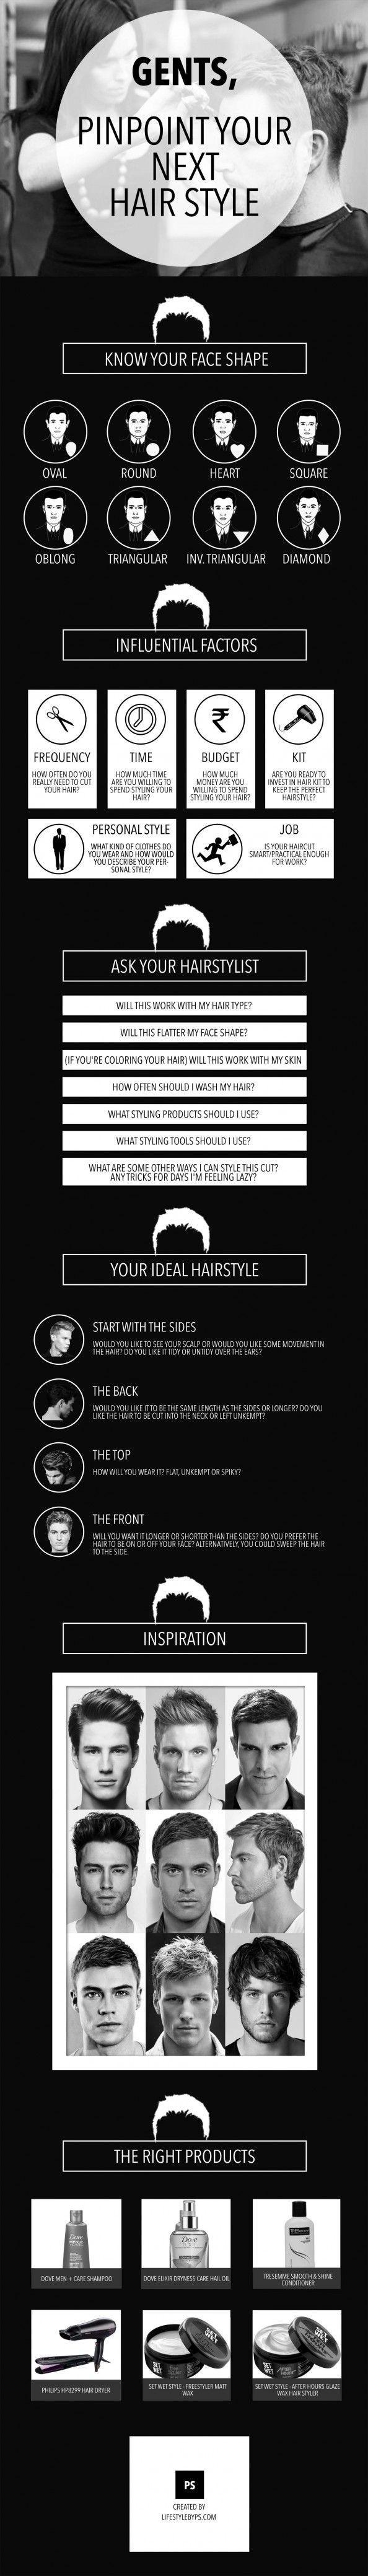 Picking A New Men's Hairstyle